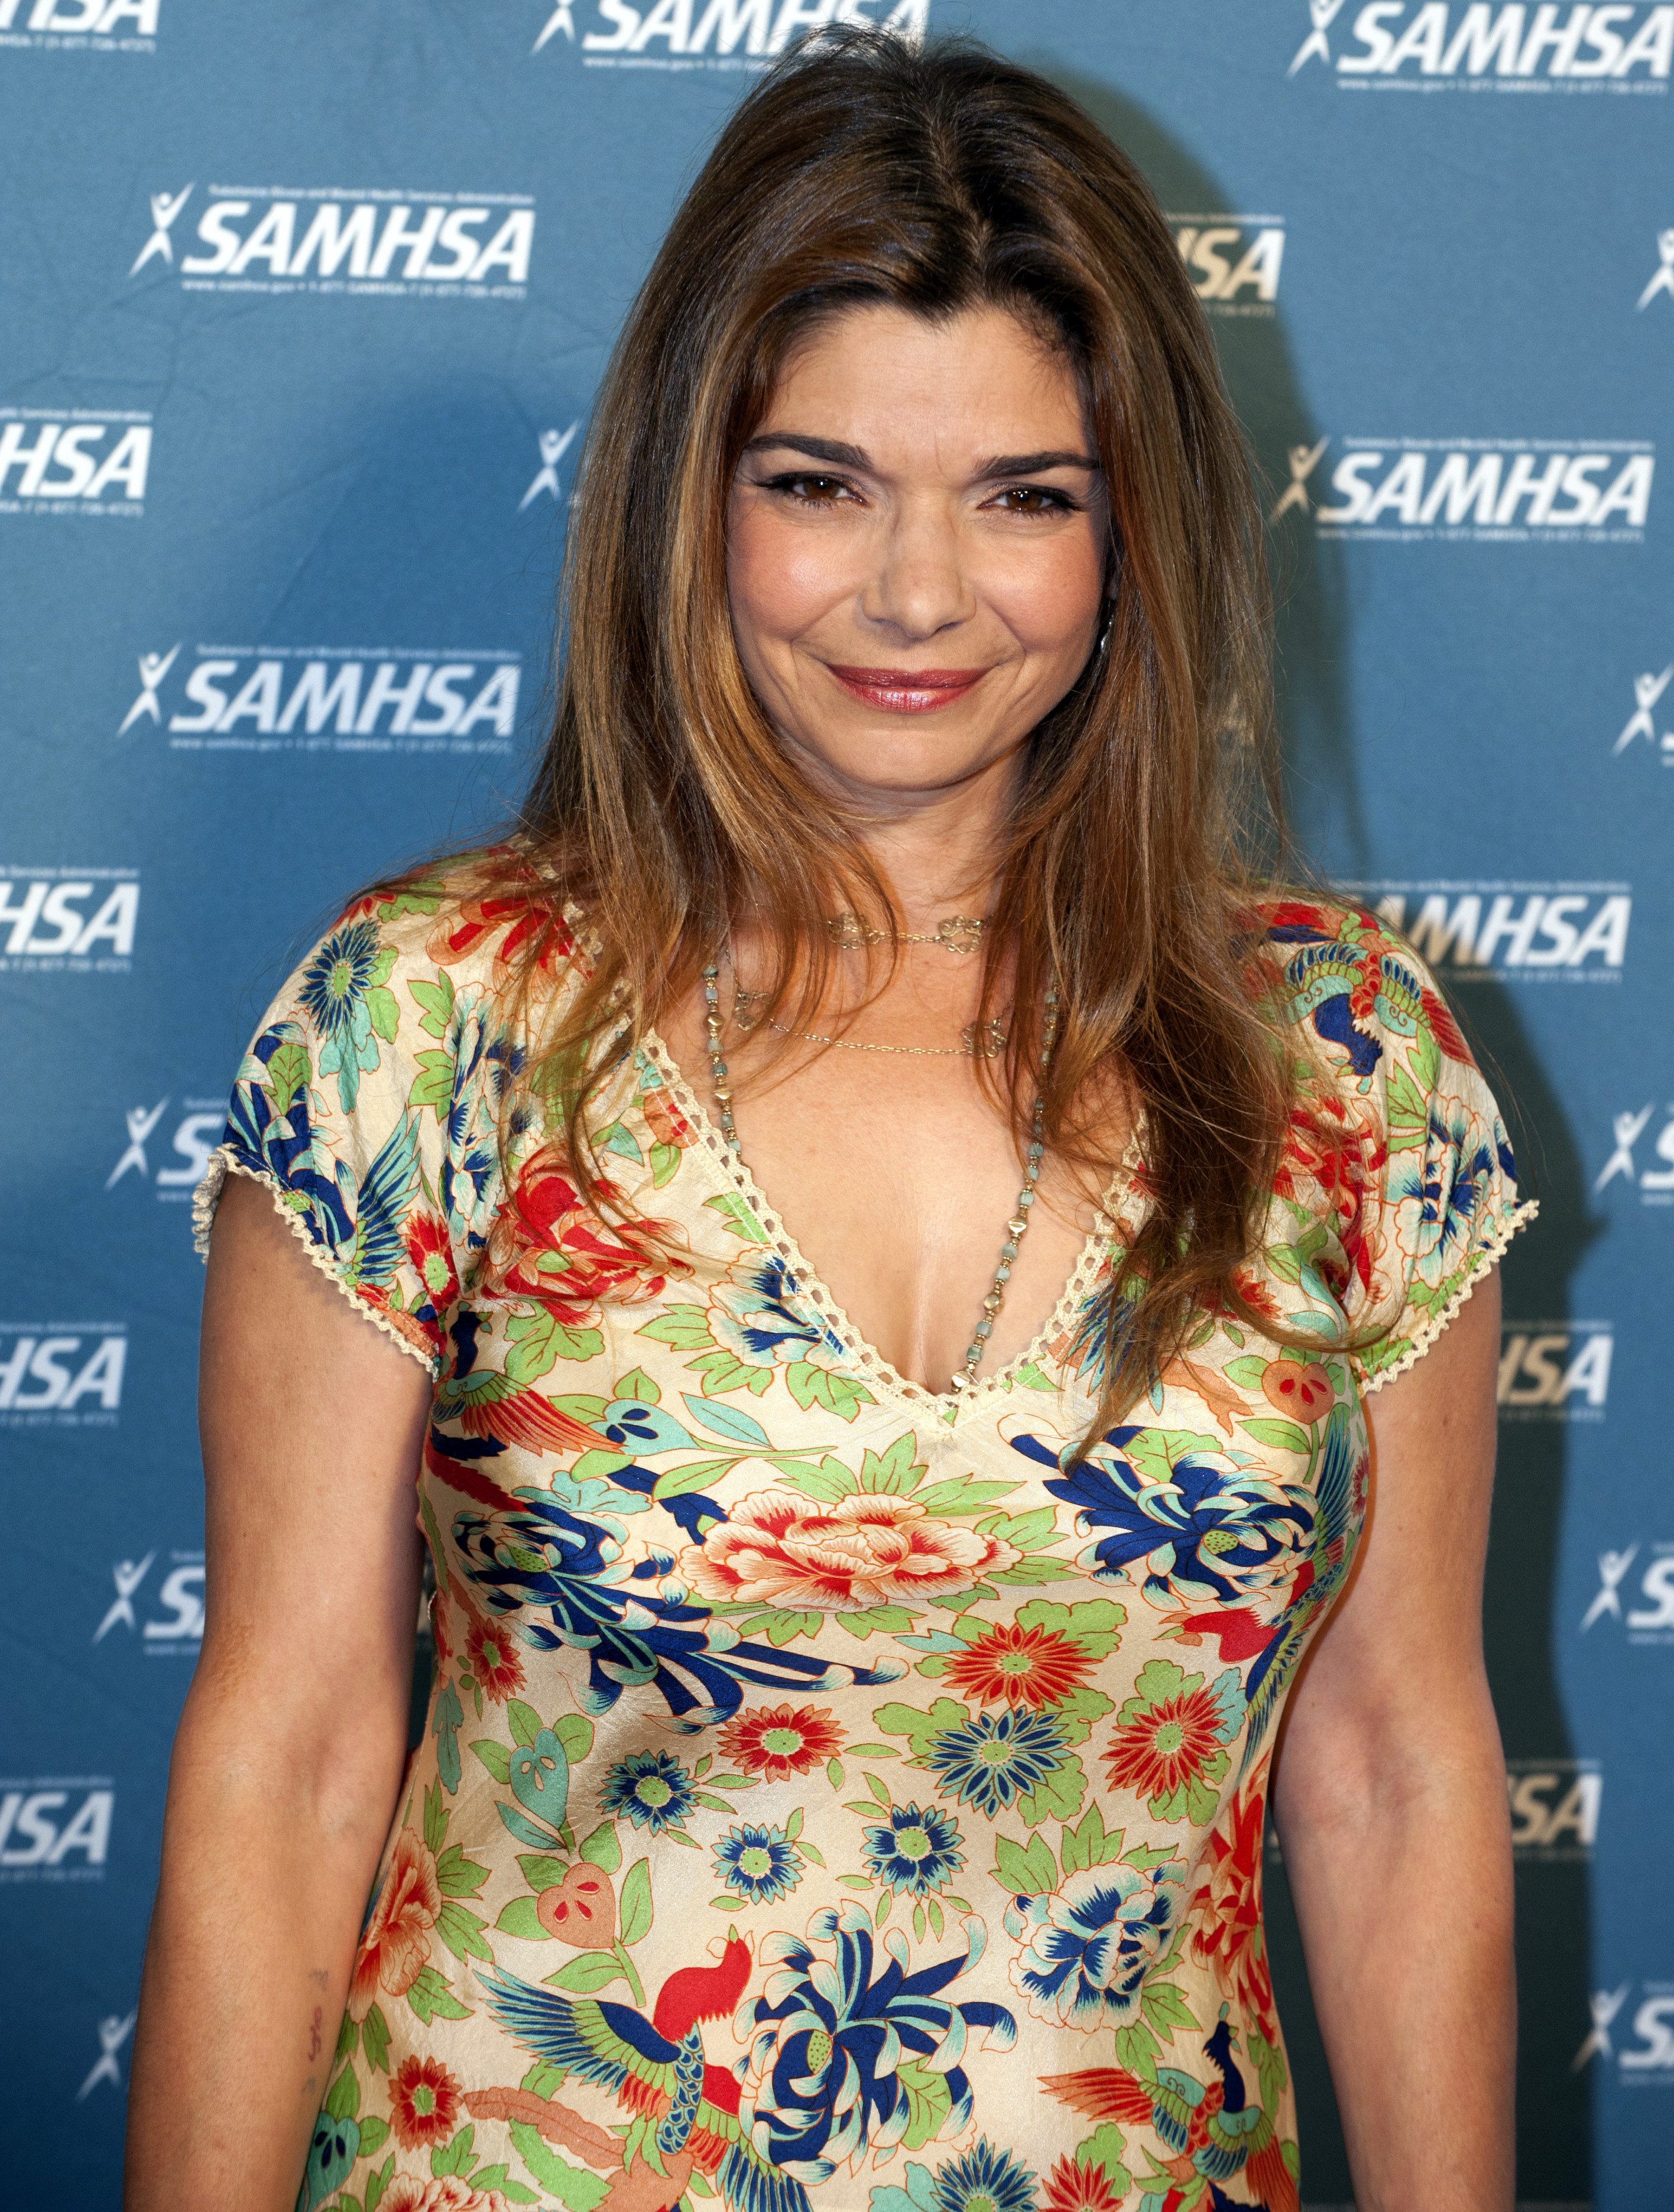 The 55-year old daughter of father John San Giacomo and mother MaryJo San Giacomo Laura San Giacomo in 2018 photo. Laura San Giacomo earned a  million dollar salary - leaving the net worth at 6 million in 2018